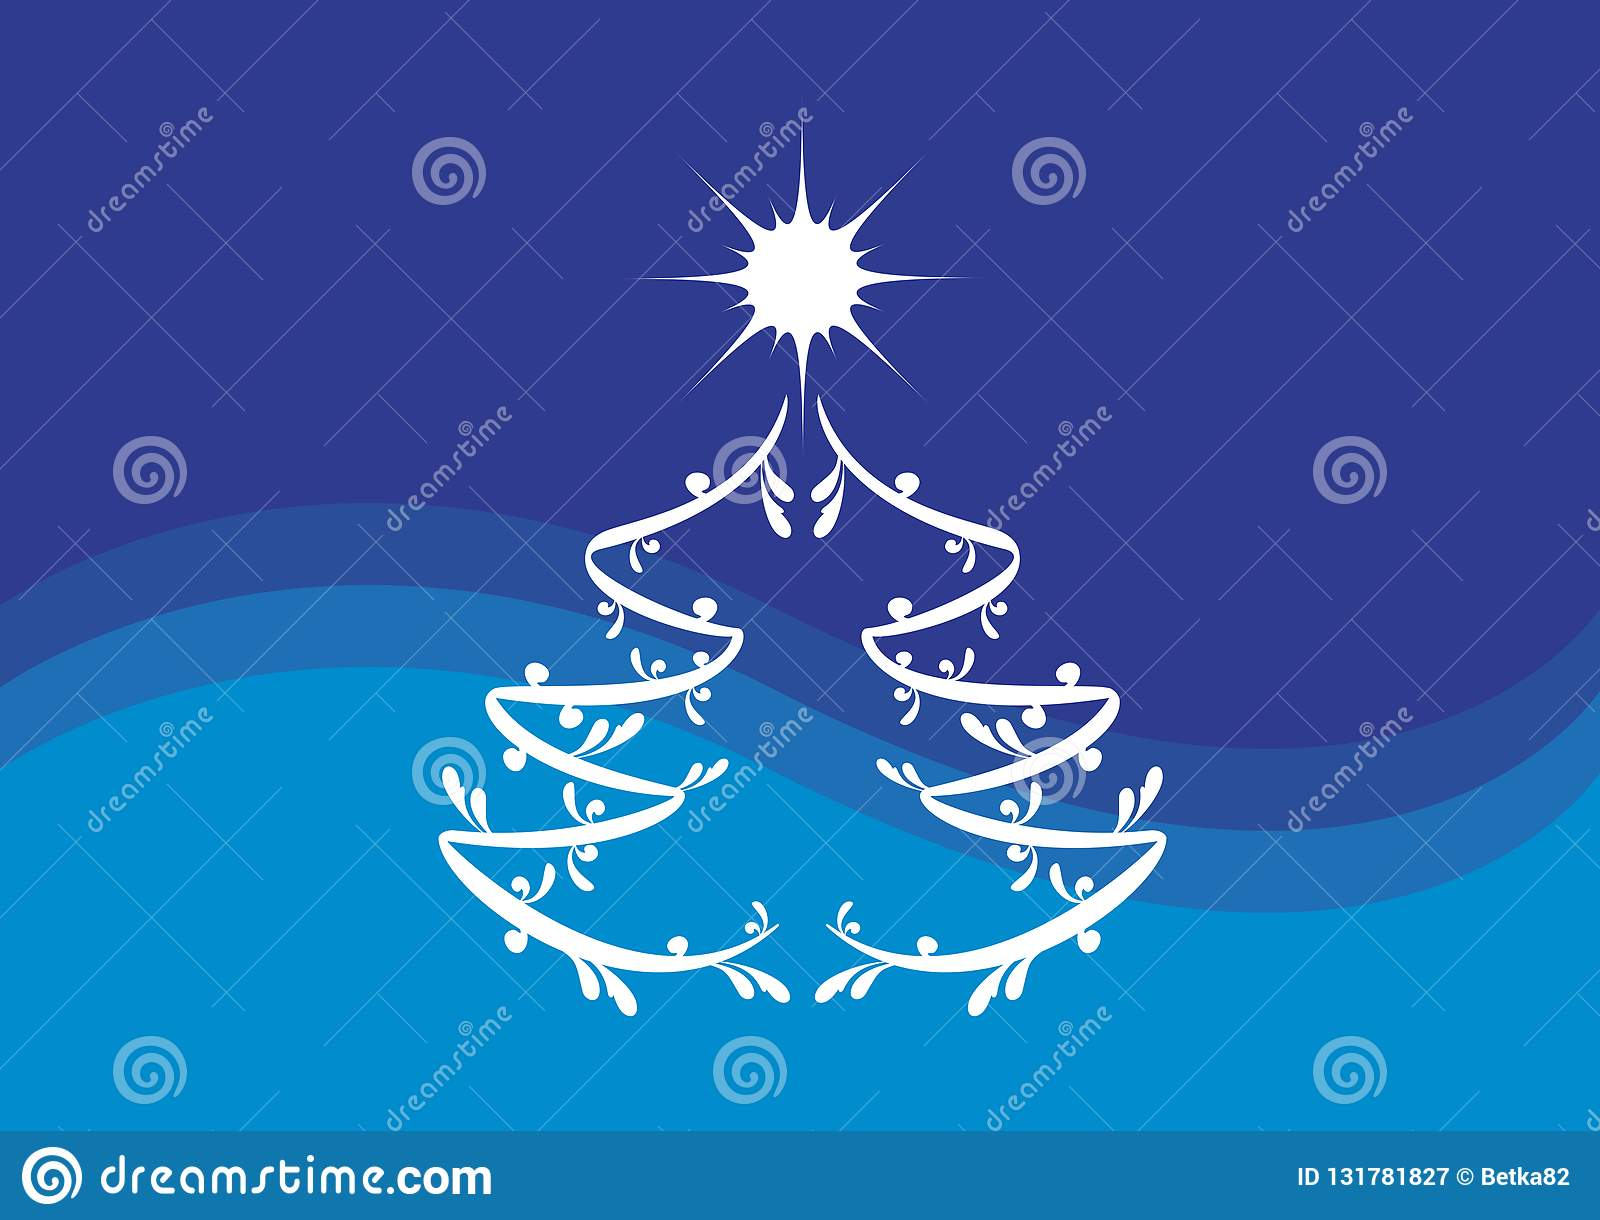 Simple Blue And White Christmas Tree Vector Illustration Stock Vector Illustration Of Greeting Holiday 131781827